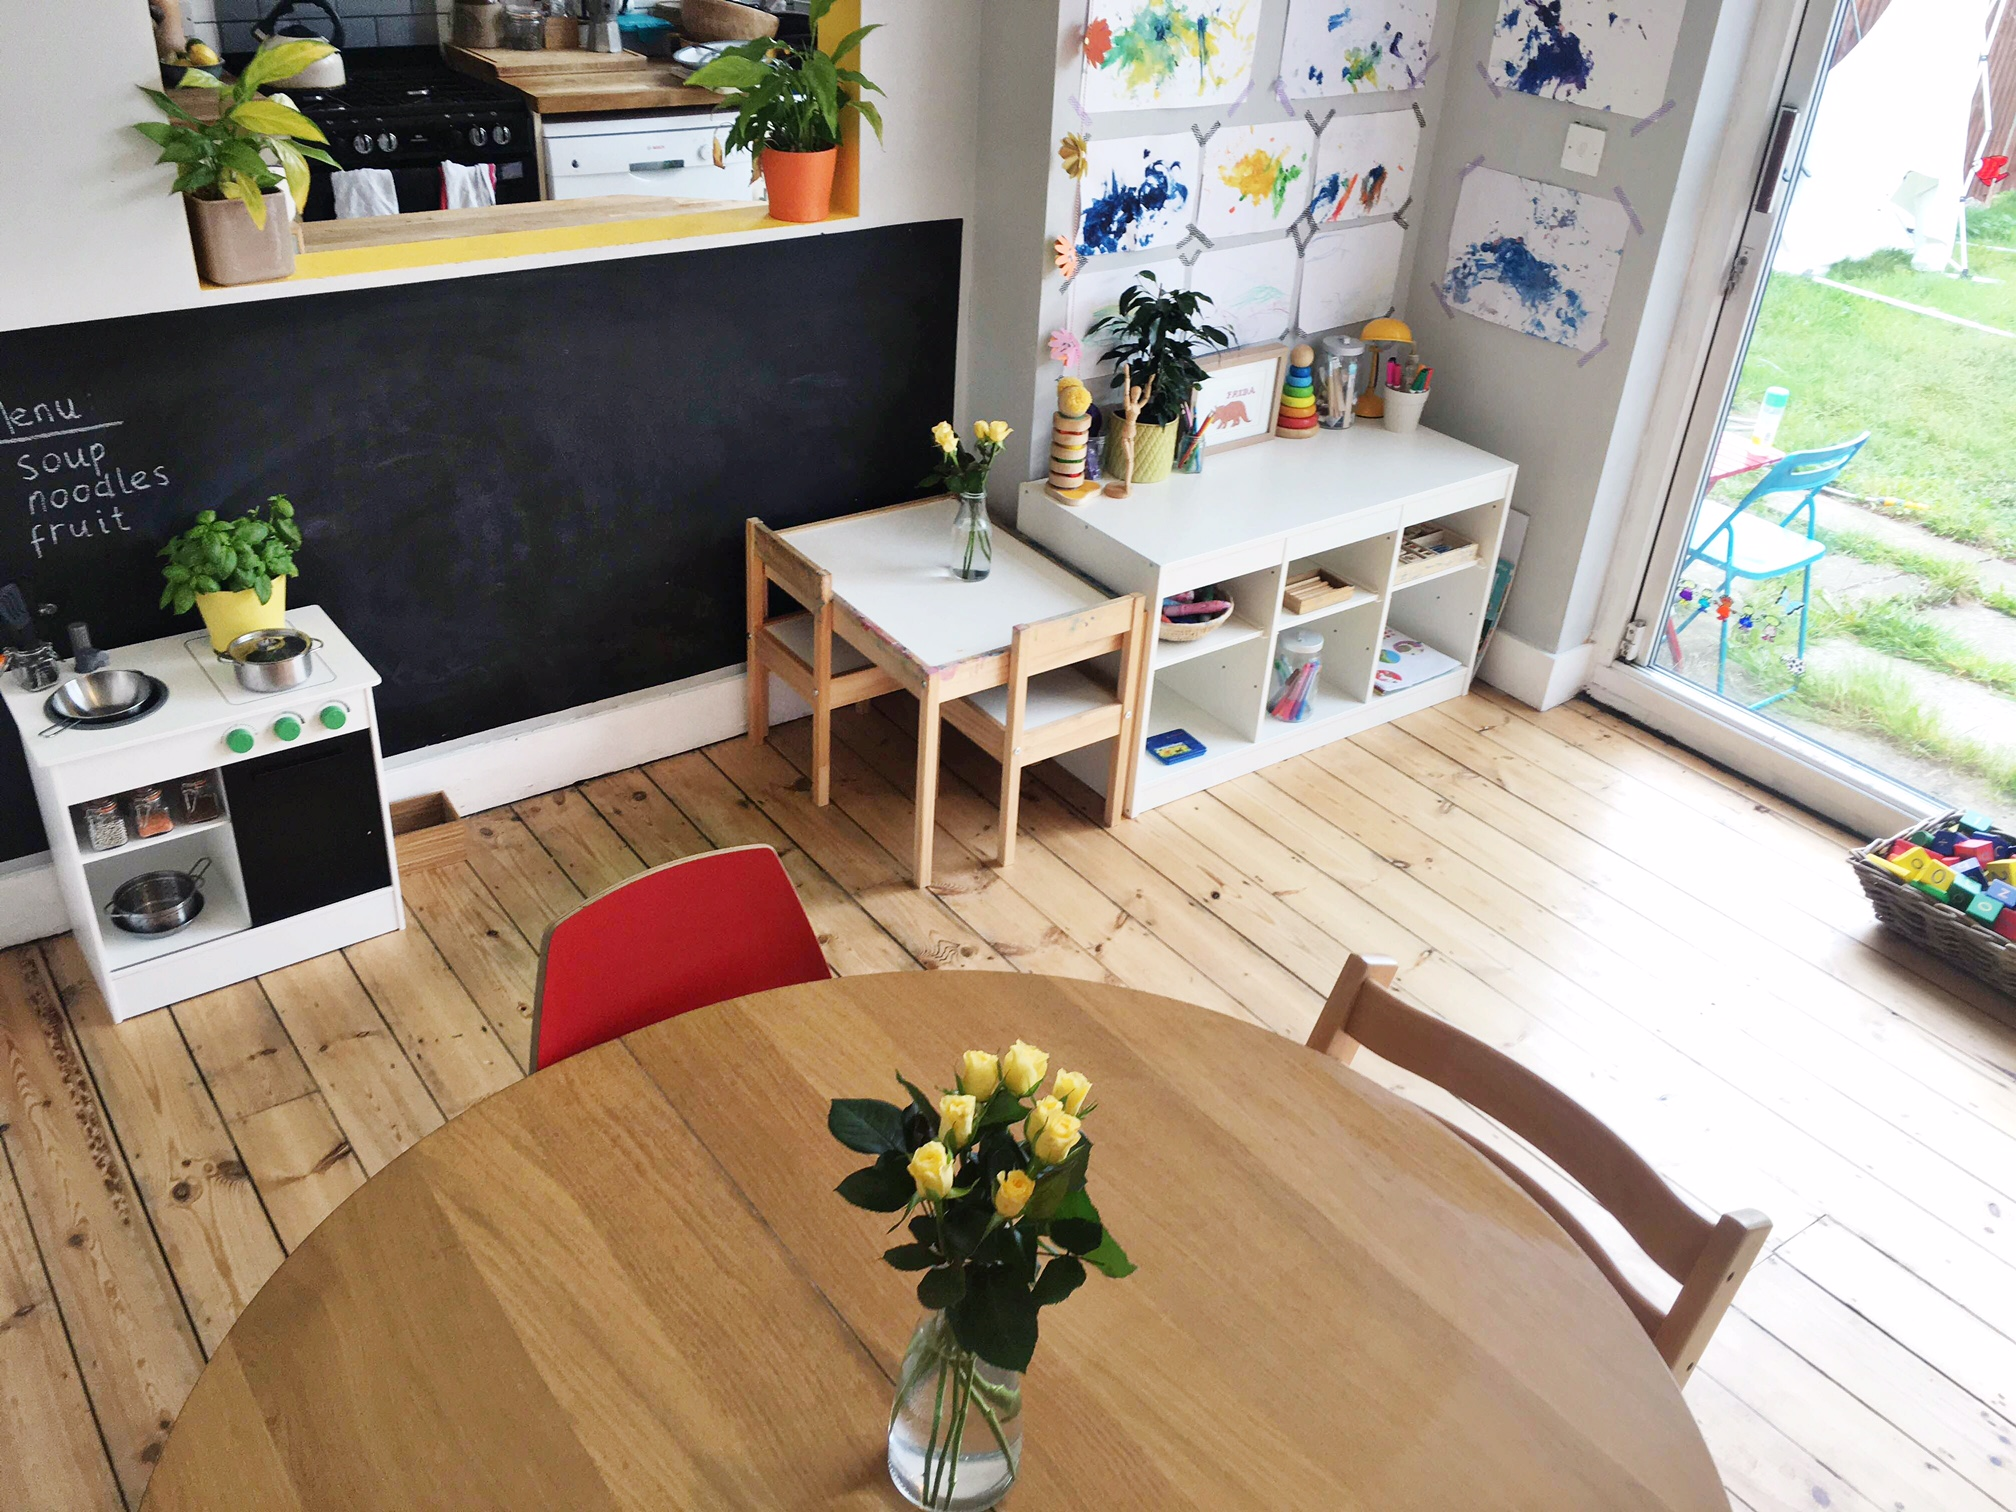 Mighty Mother's kitchen and Montessori shelves for 18 month old